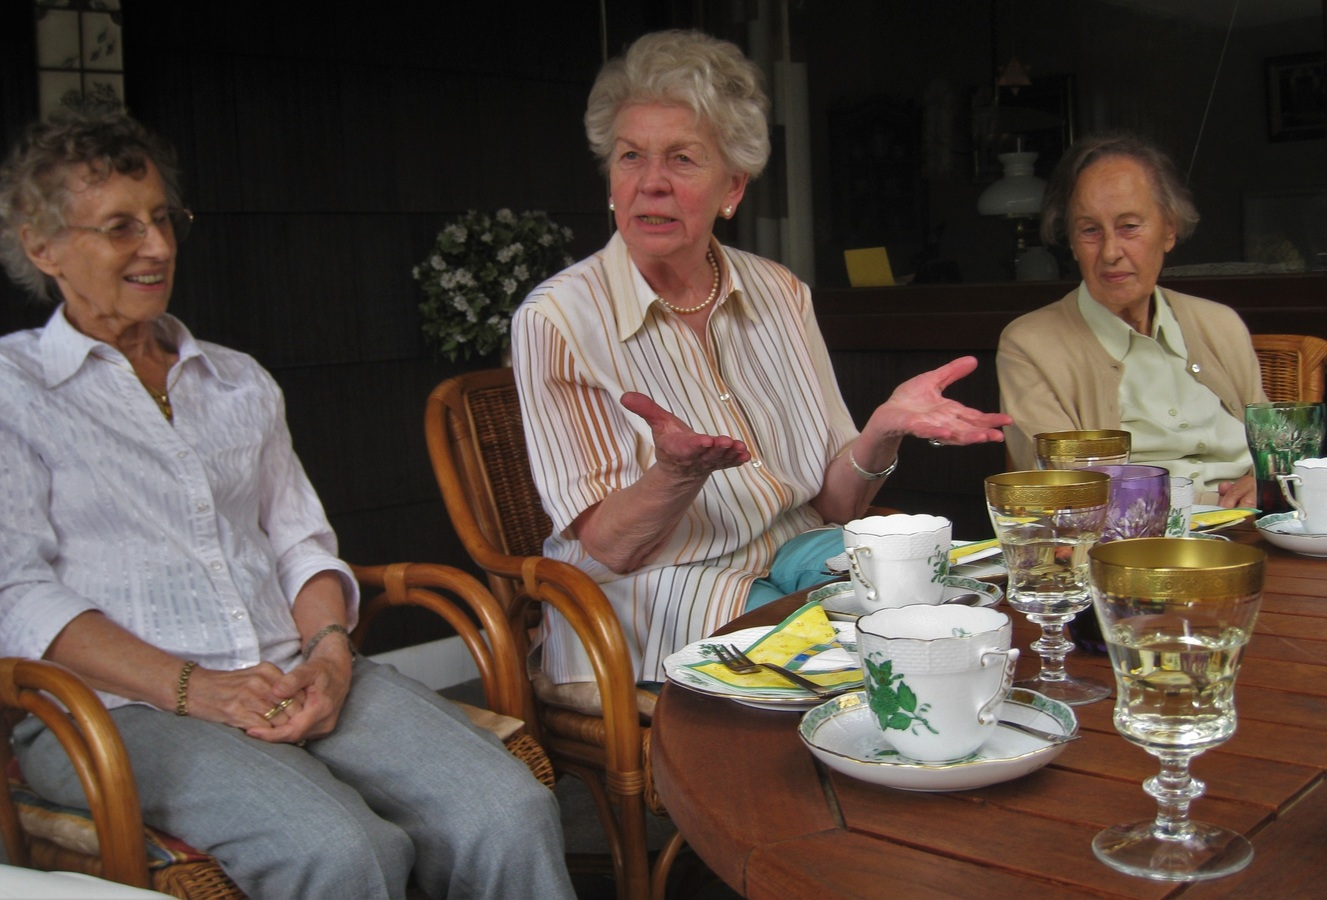 Senior living homes with group activities and social activities are great places for ageing seniors